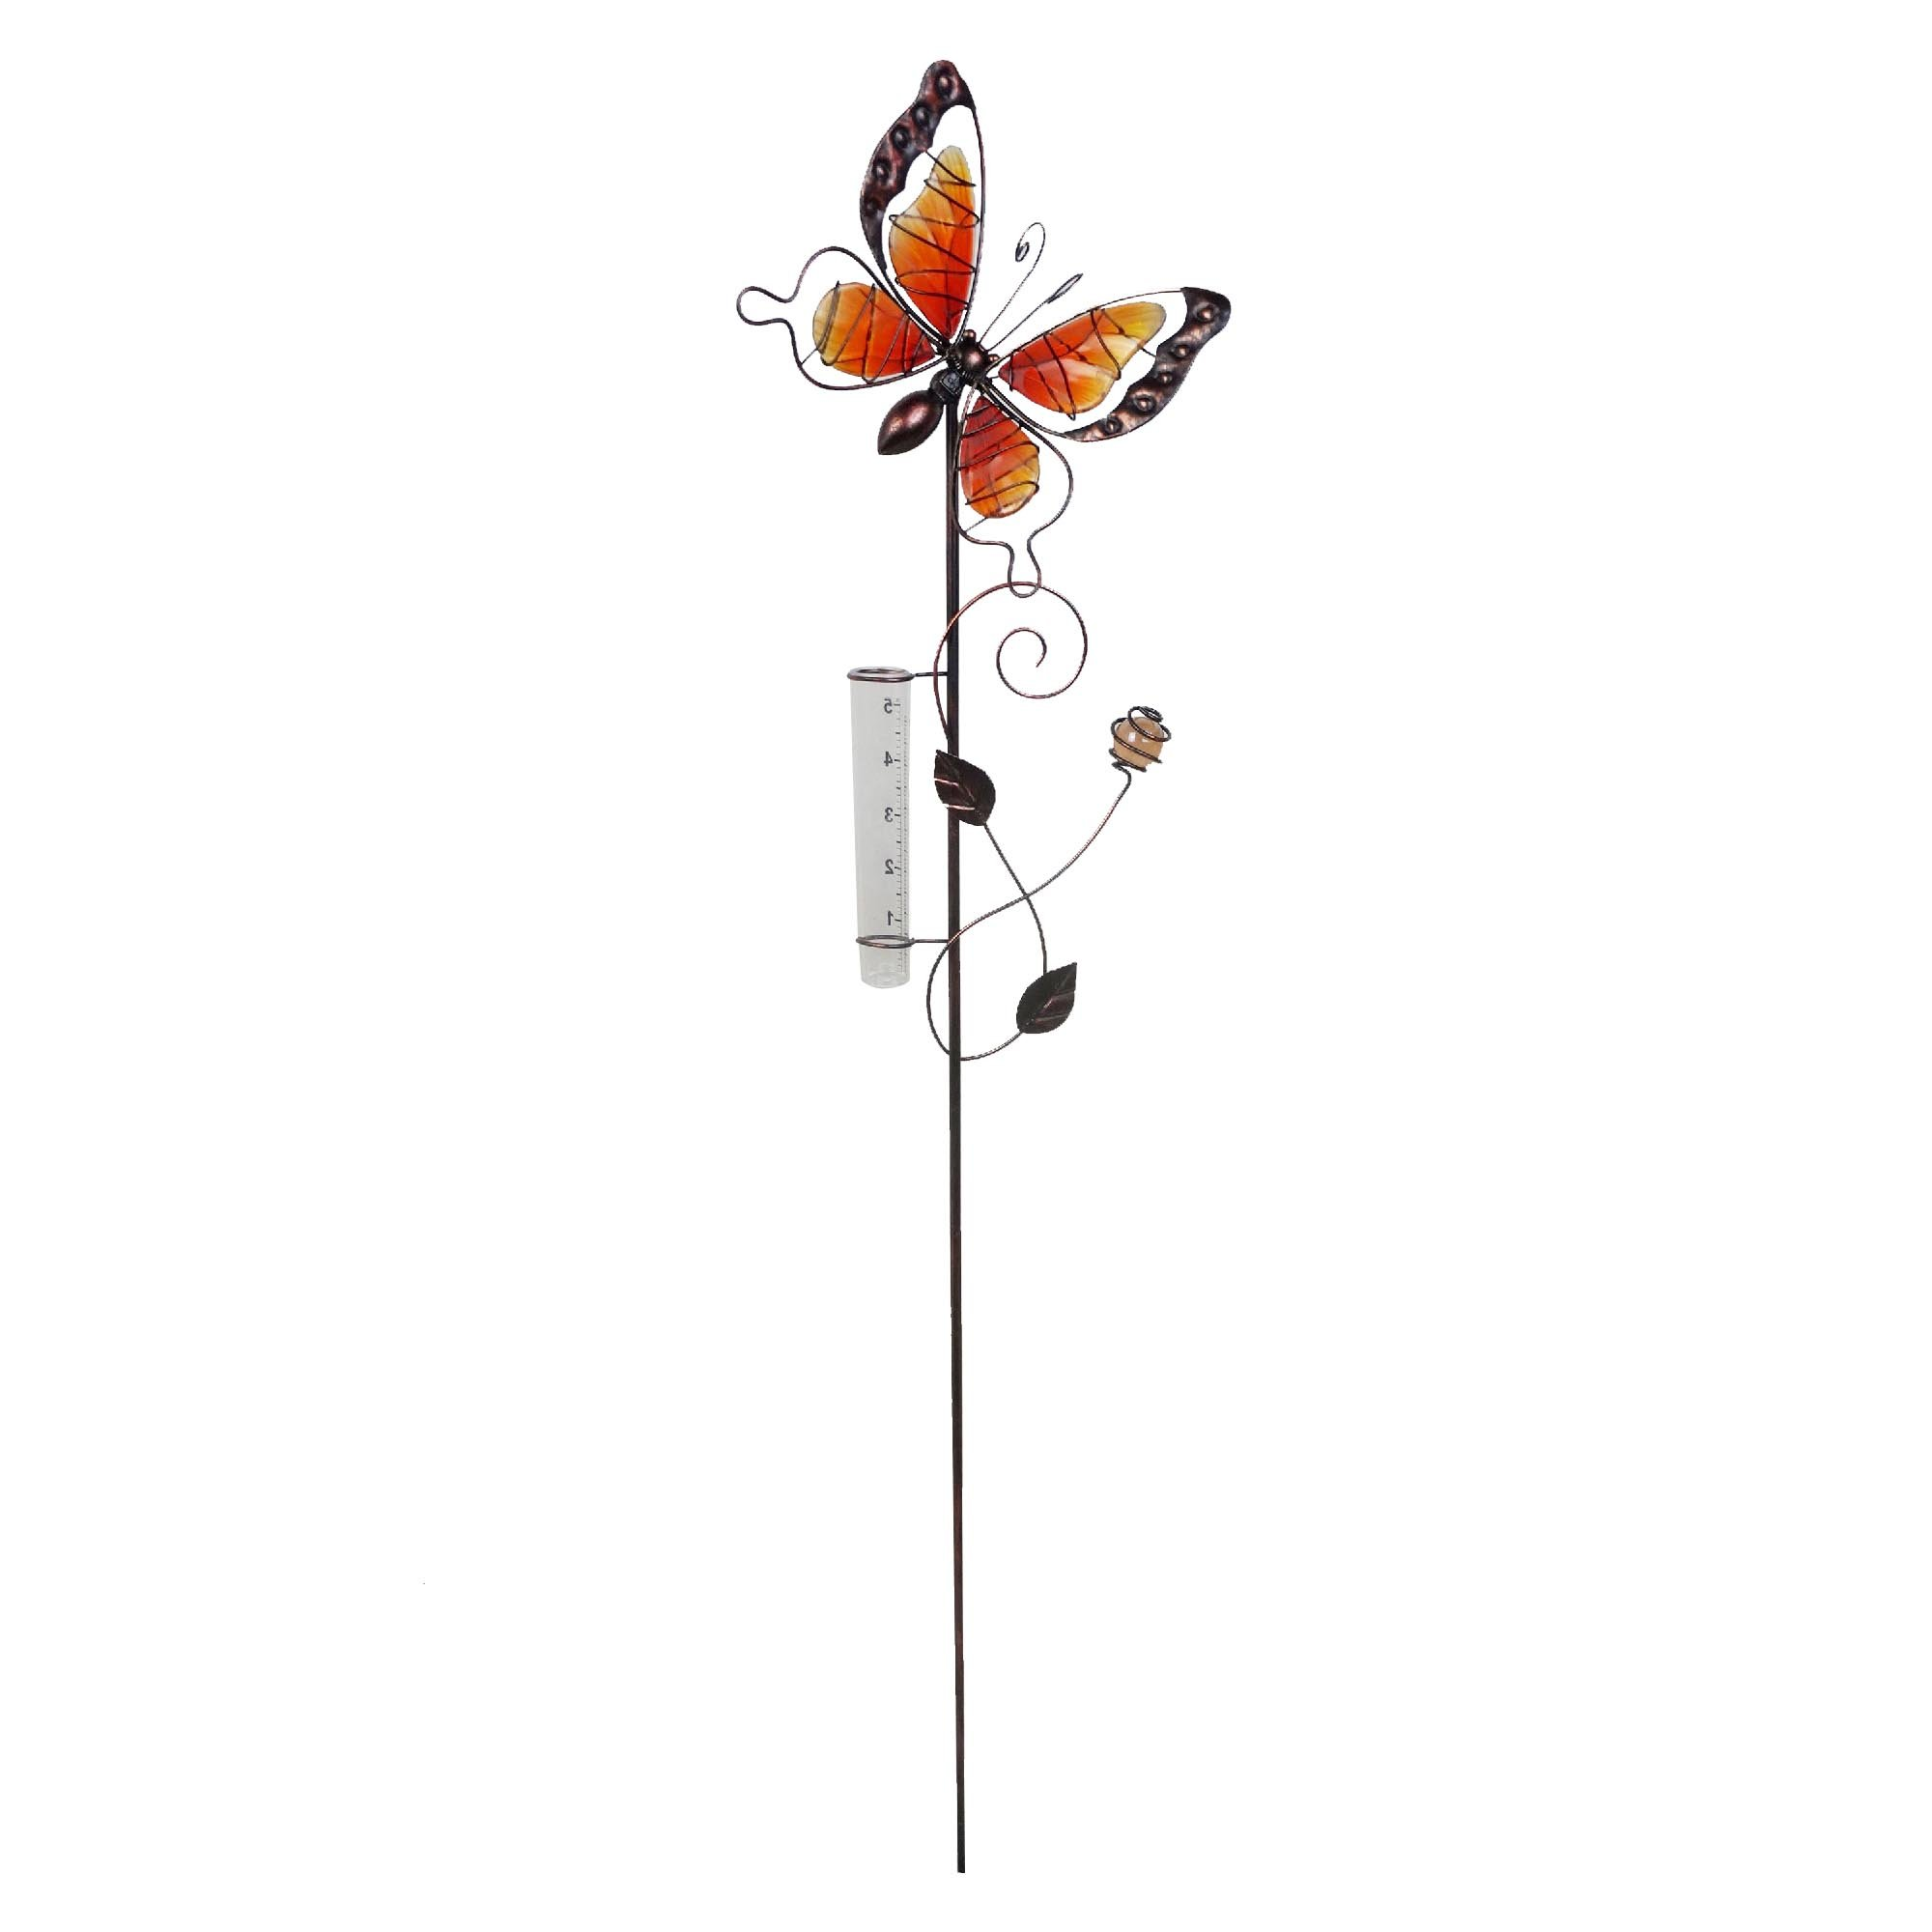 Creative Motion 14290-3 Garden Décor, 5.75'' x 3.5'' x 36.75'', Multicolor